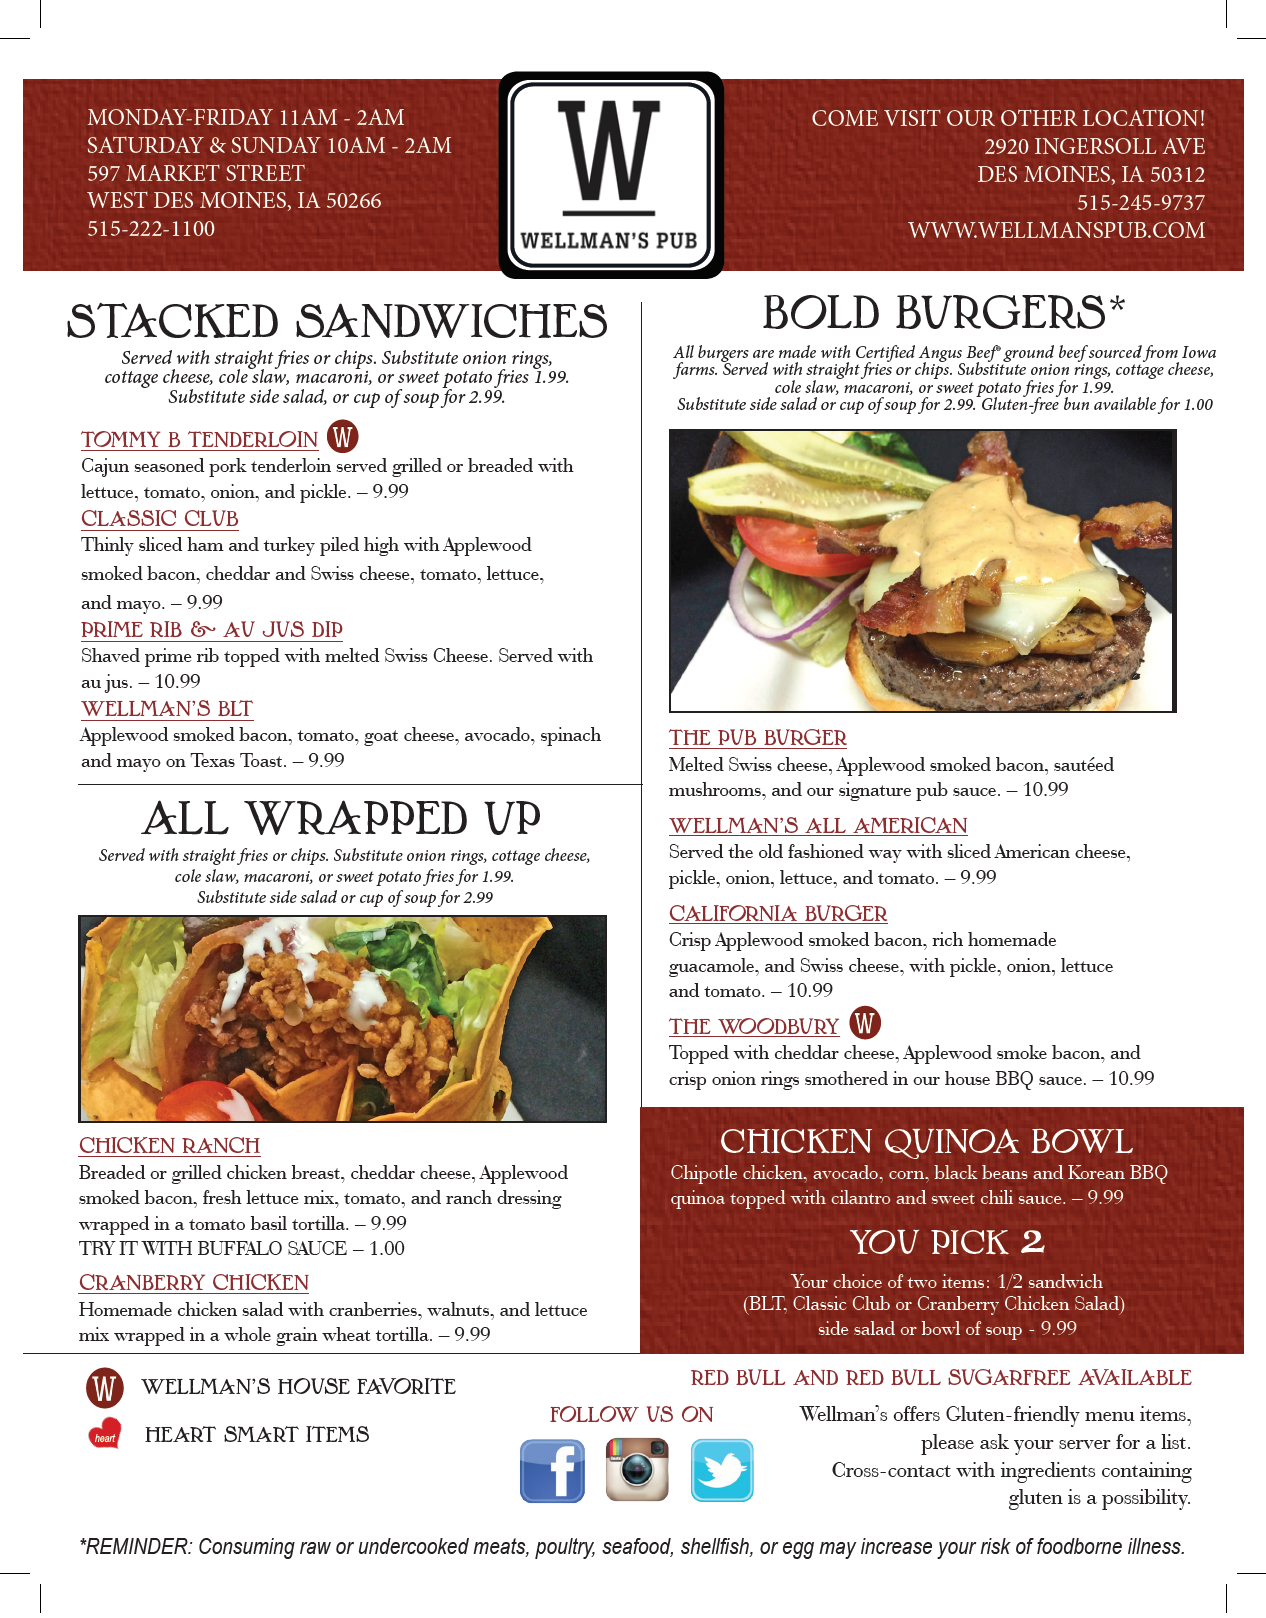 Wellman's Pub and Rooftop Brunch Spring 2019 West Des Moines P2.png